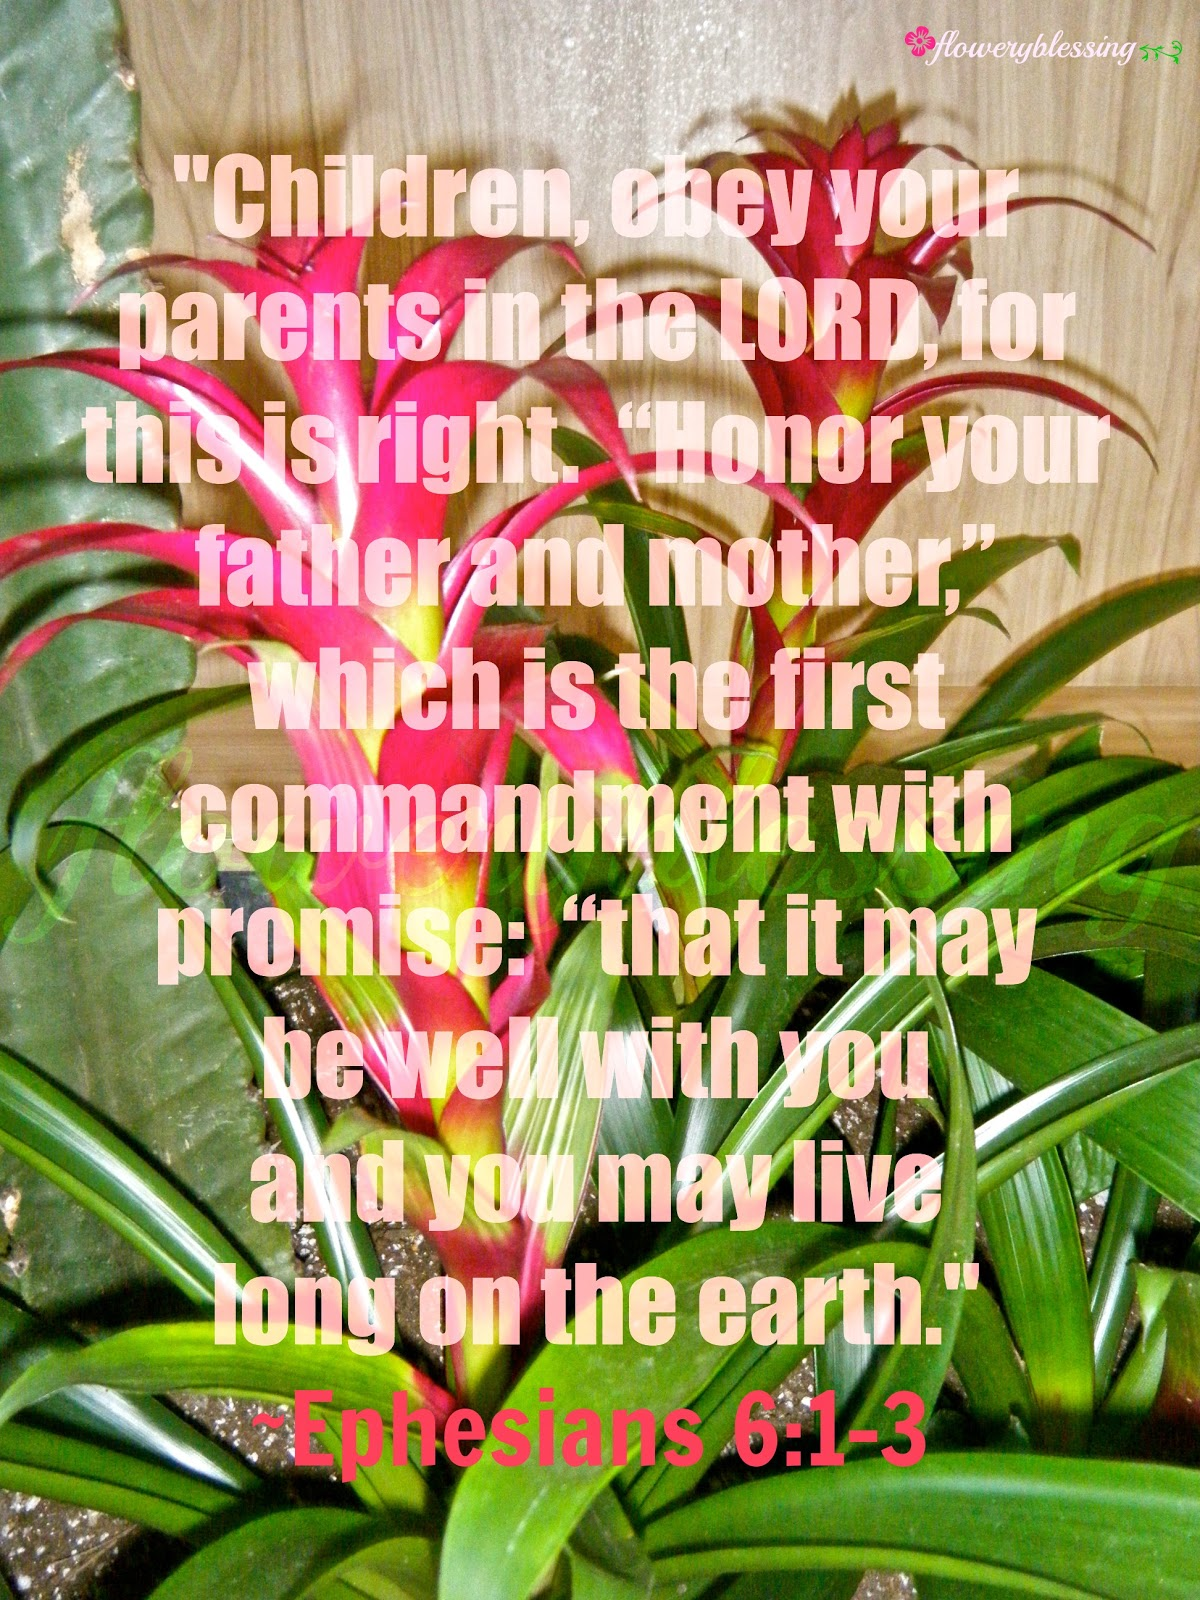 Flowery Blessing Children Obey Your Parents In The